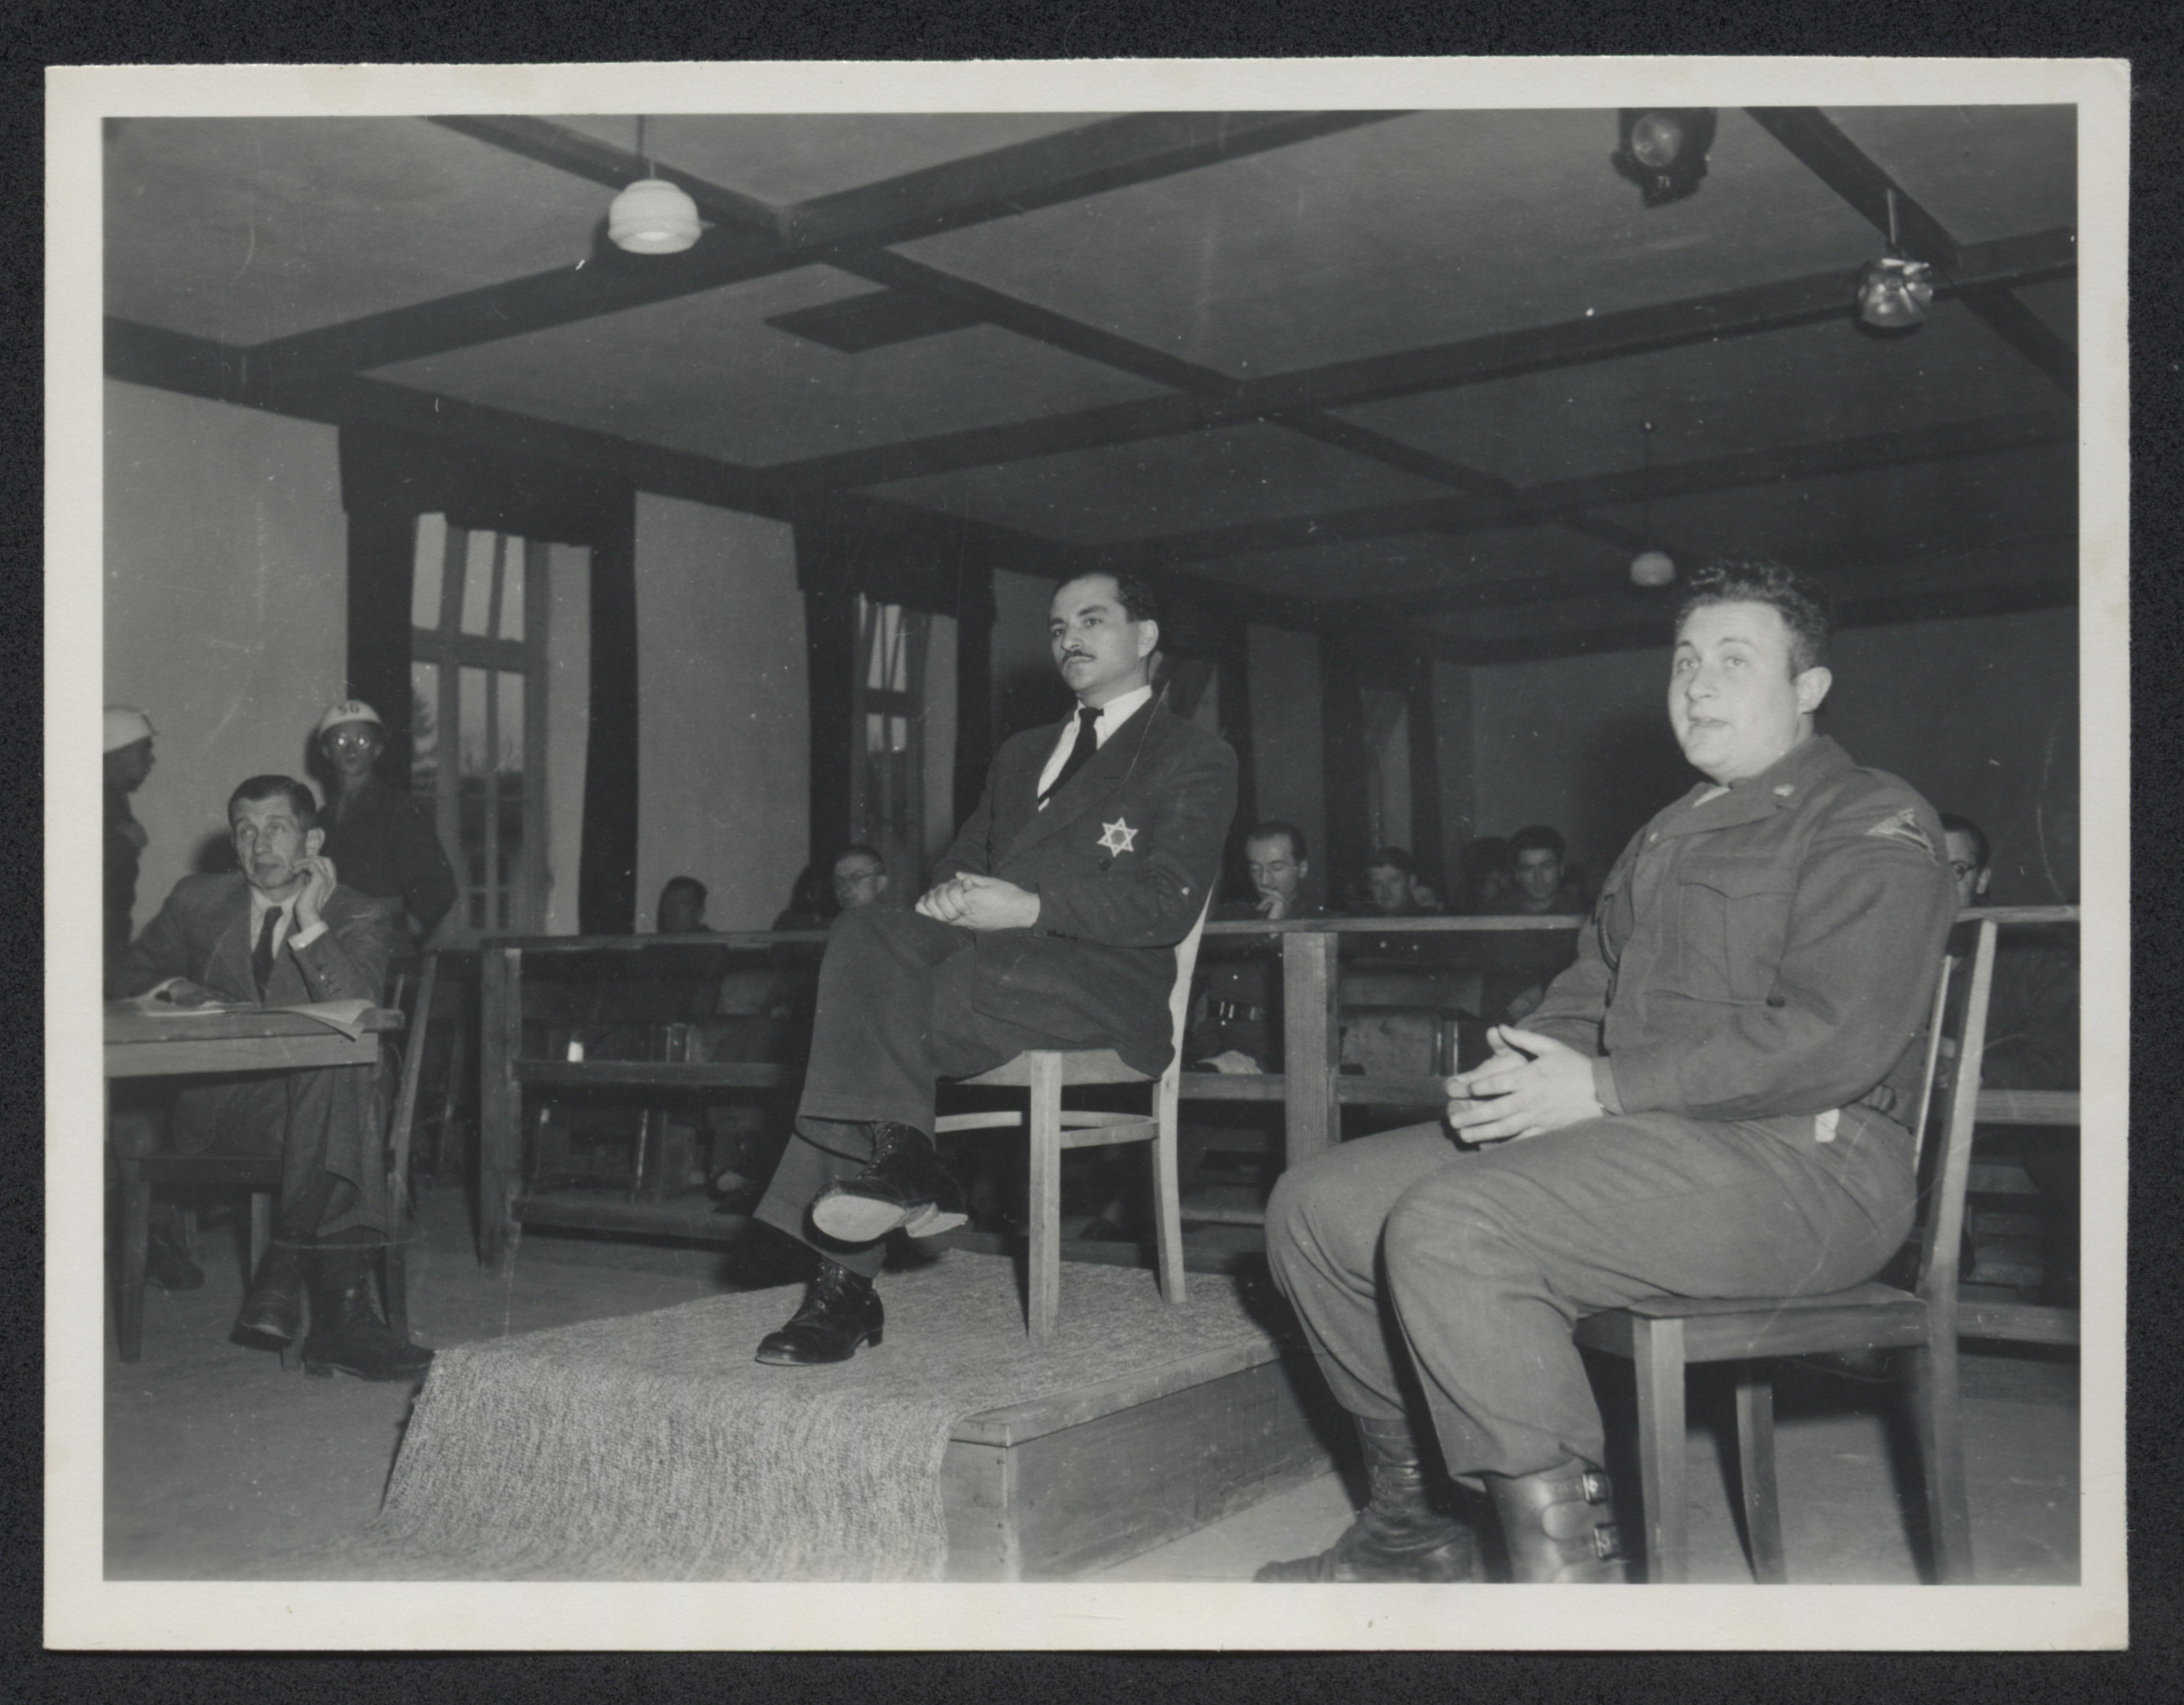 A witness wearing a star of David on his suit jacket testifies during the Dachau war crimes trial.